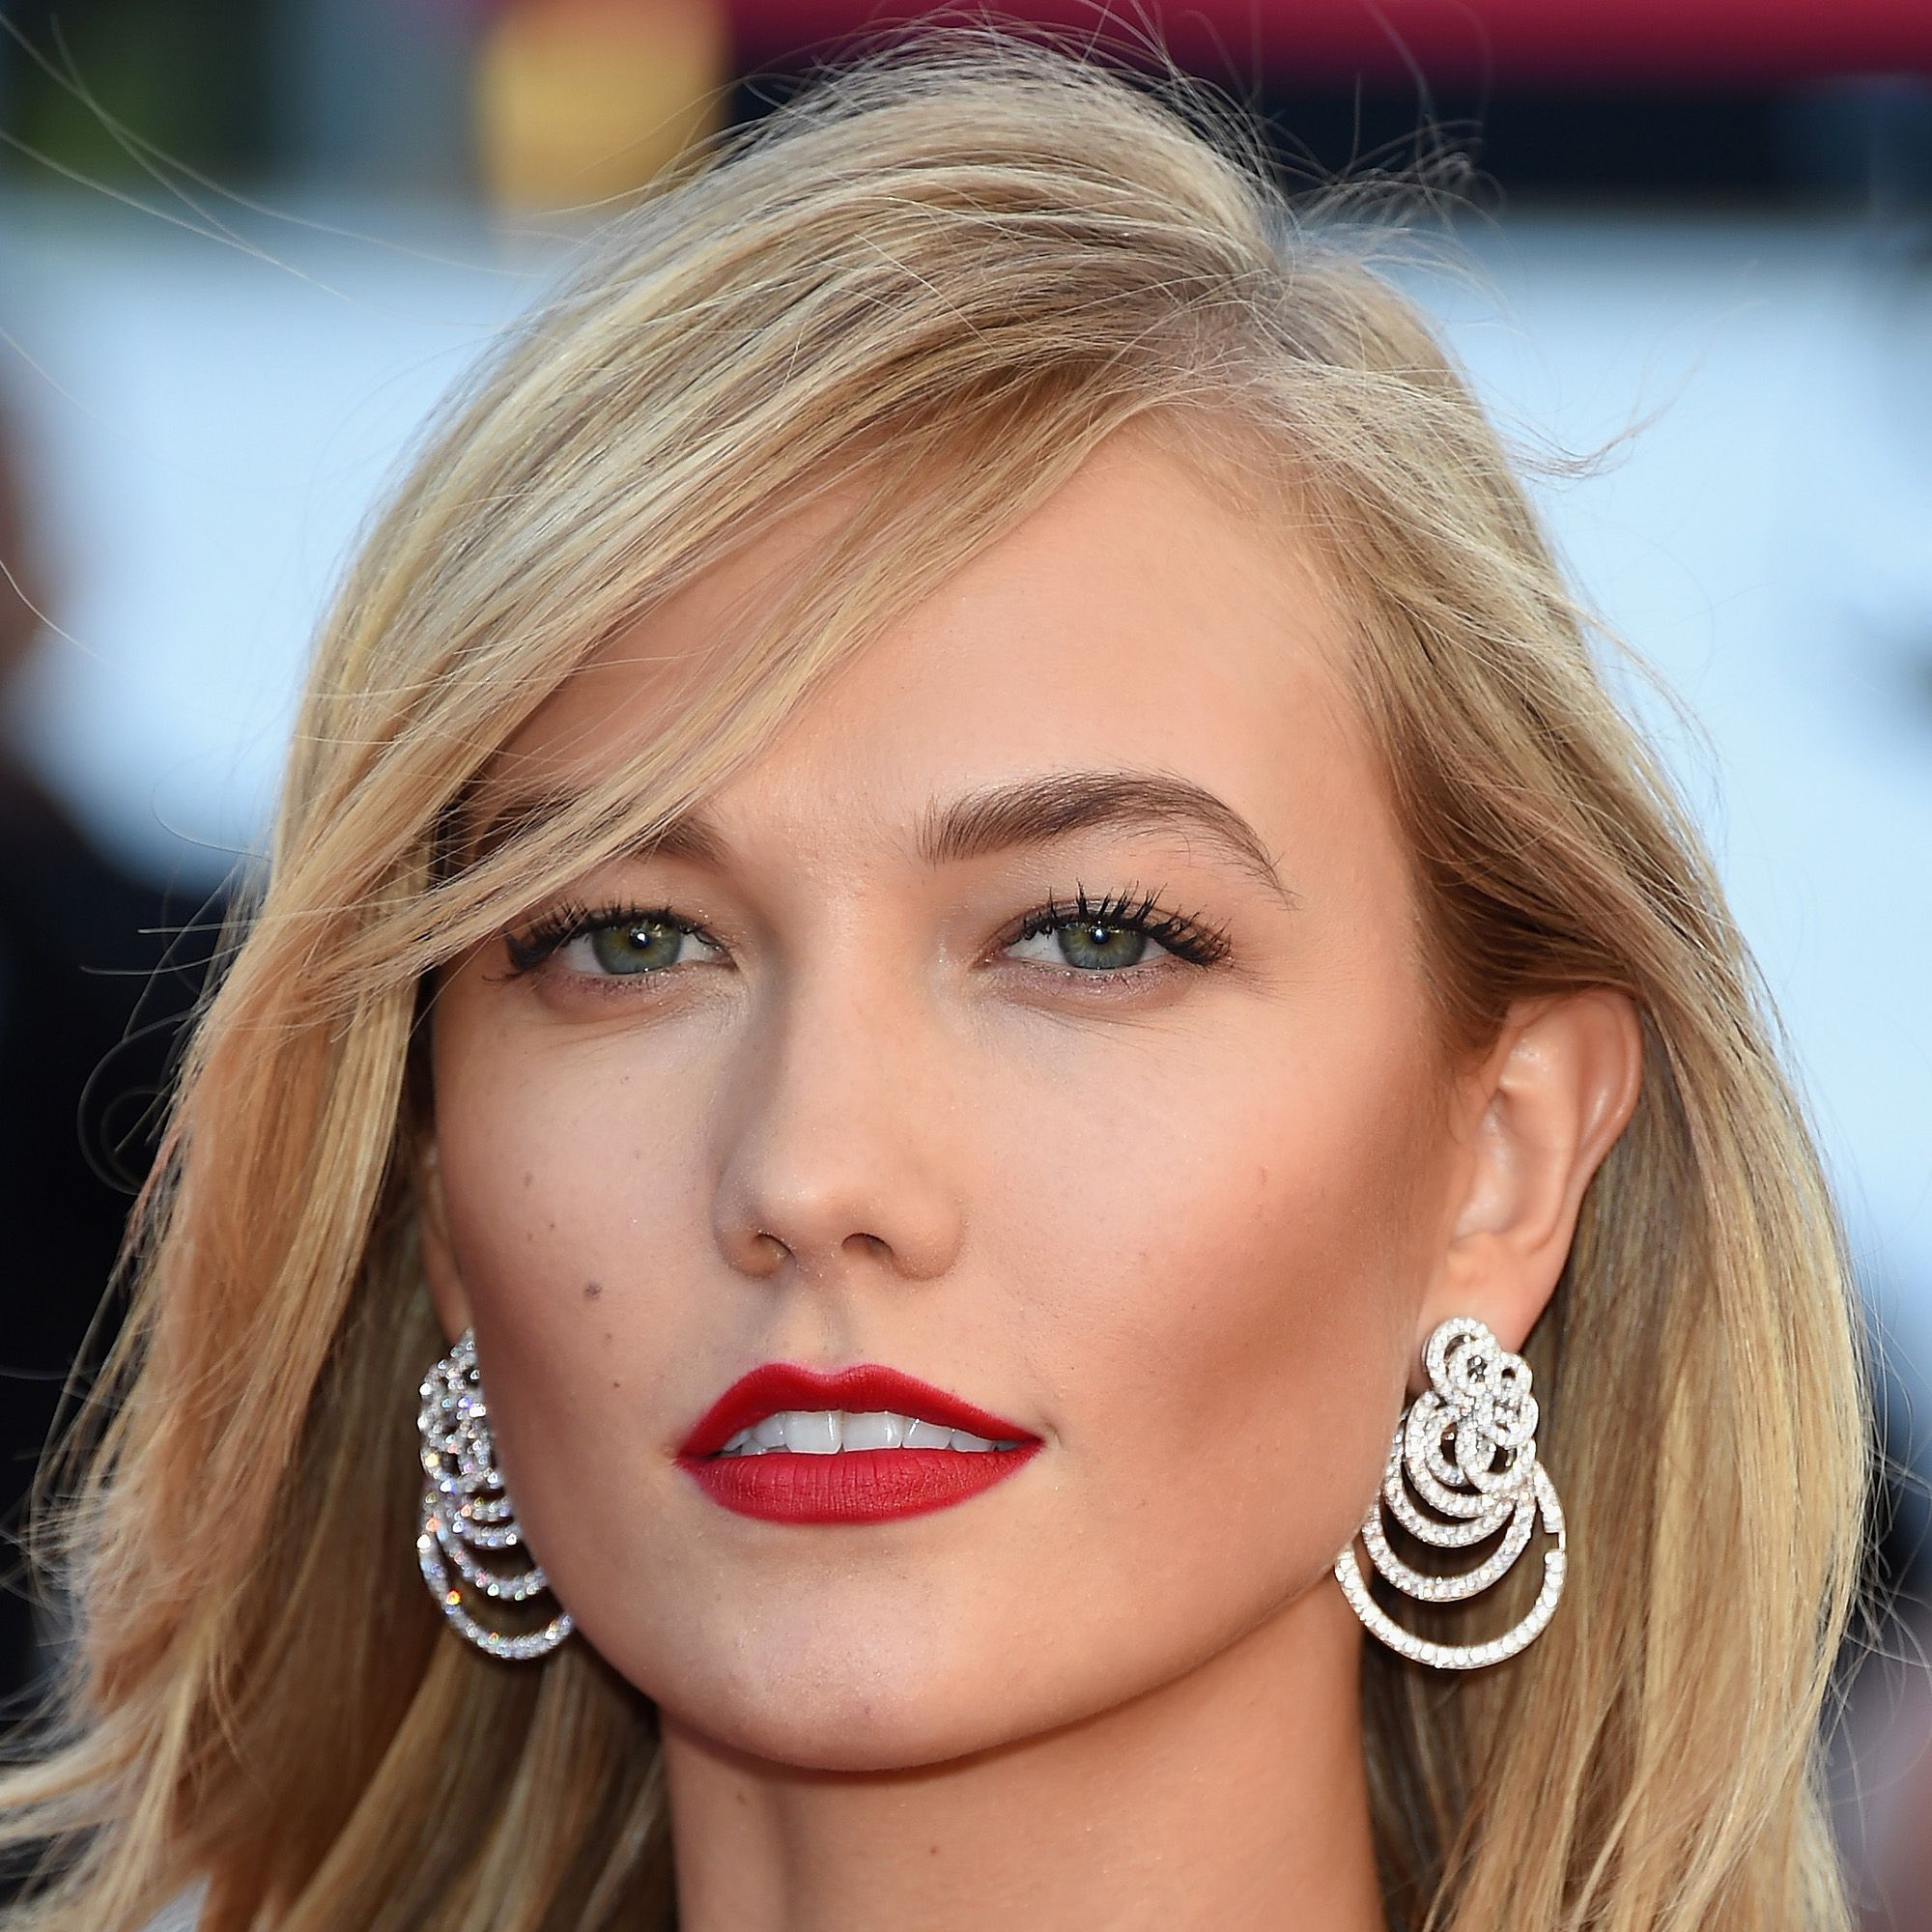 """CANNES, FRANCE - MAY 20: Karlie Kloss attends the """"Youth""""  Premiere during the 68th annual Cannes Film Festival on May 20, 2015 in Cannes, France.  (Photo by Venturelli/WireImage)"""